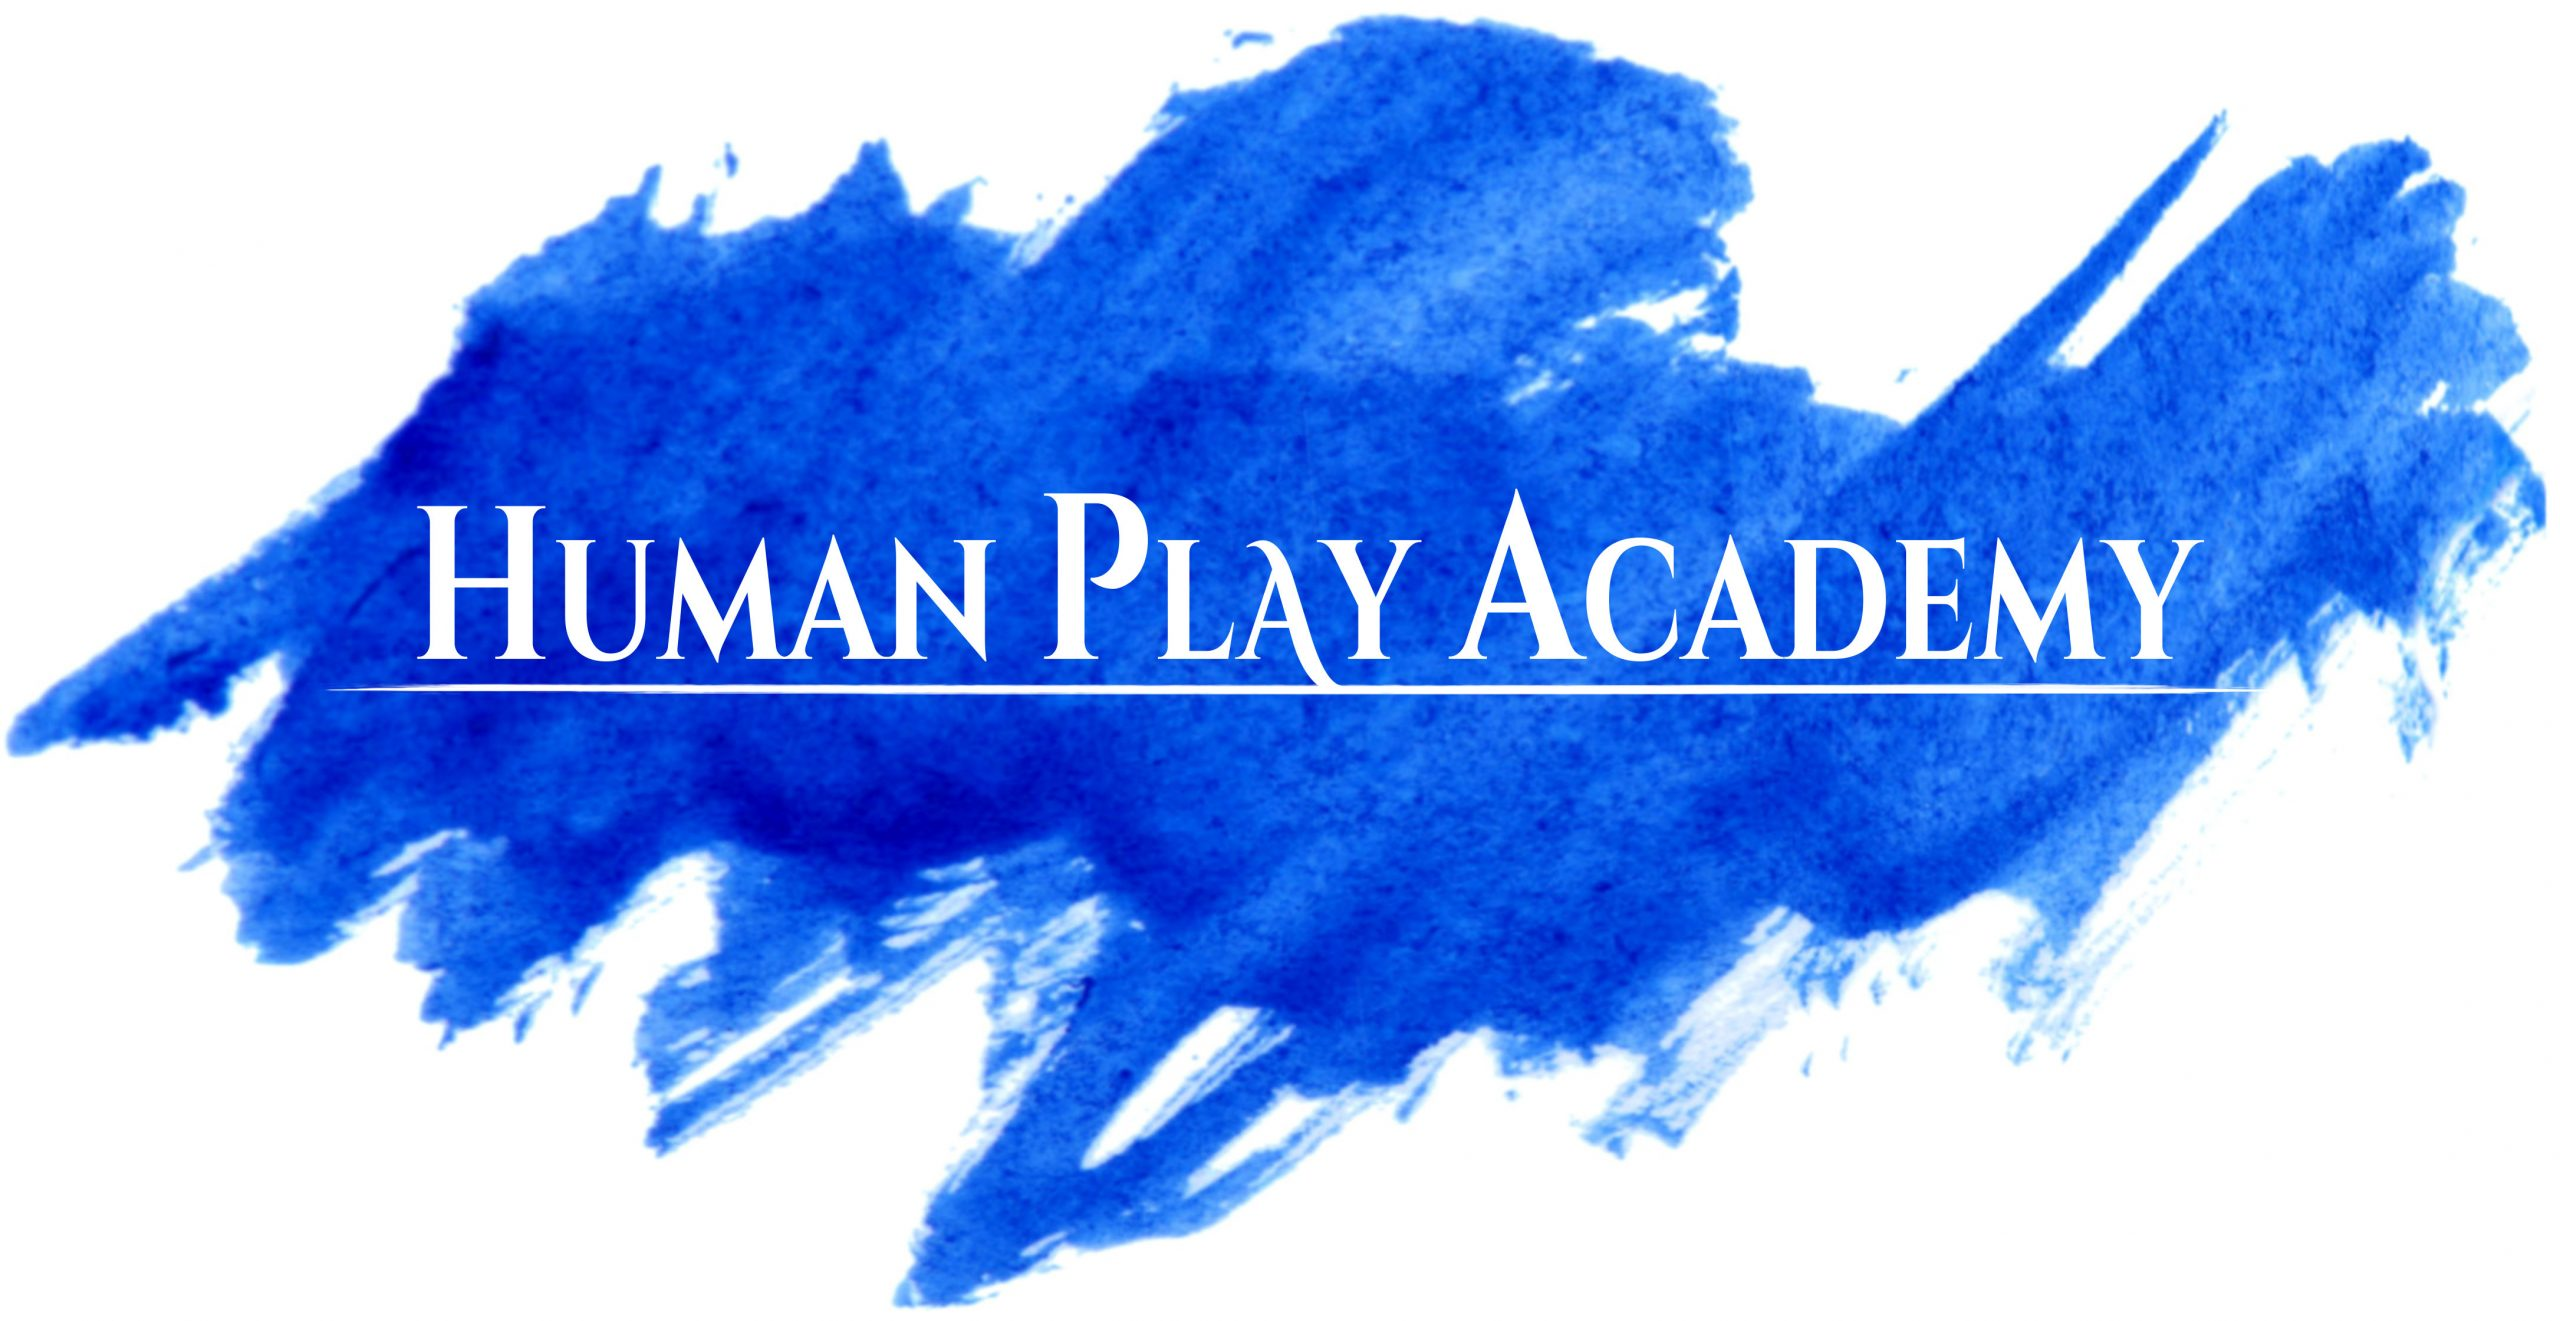 The Human Play Academy